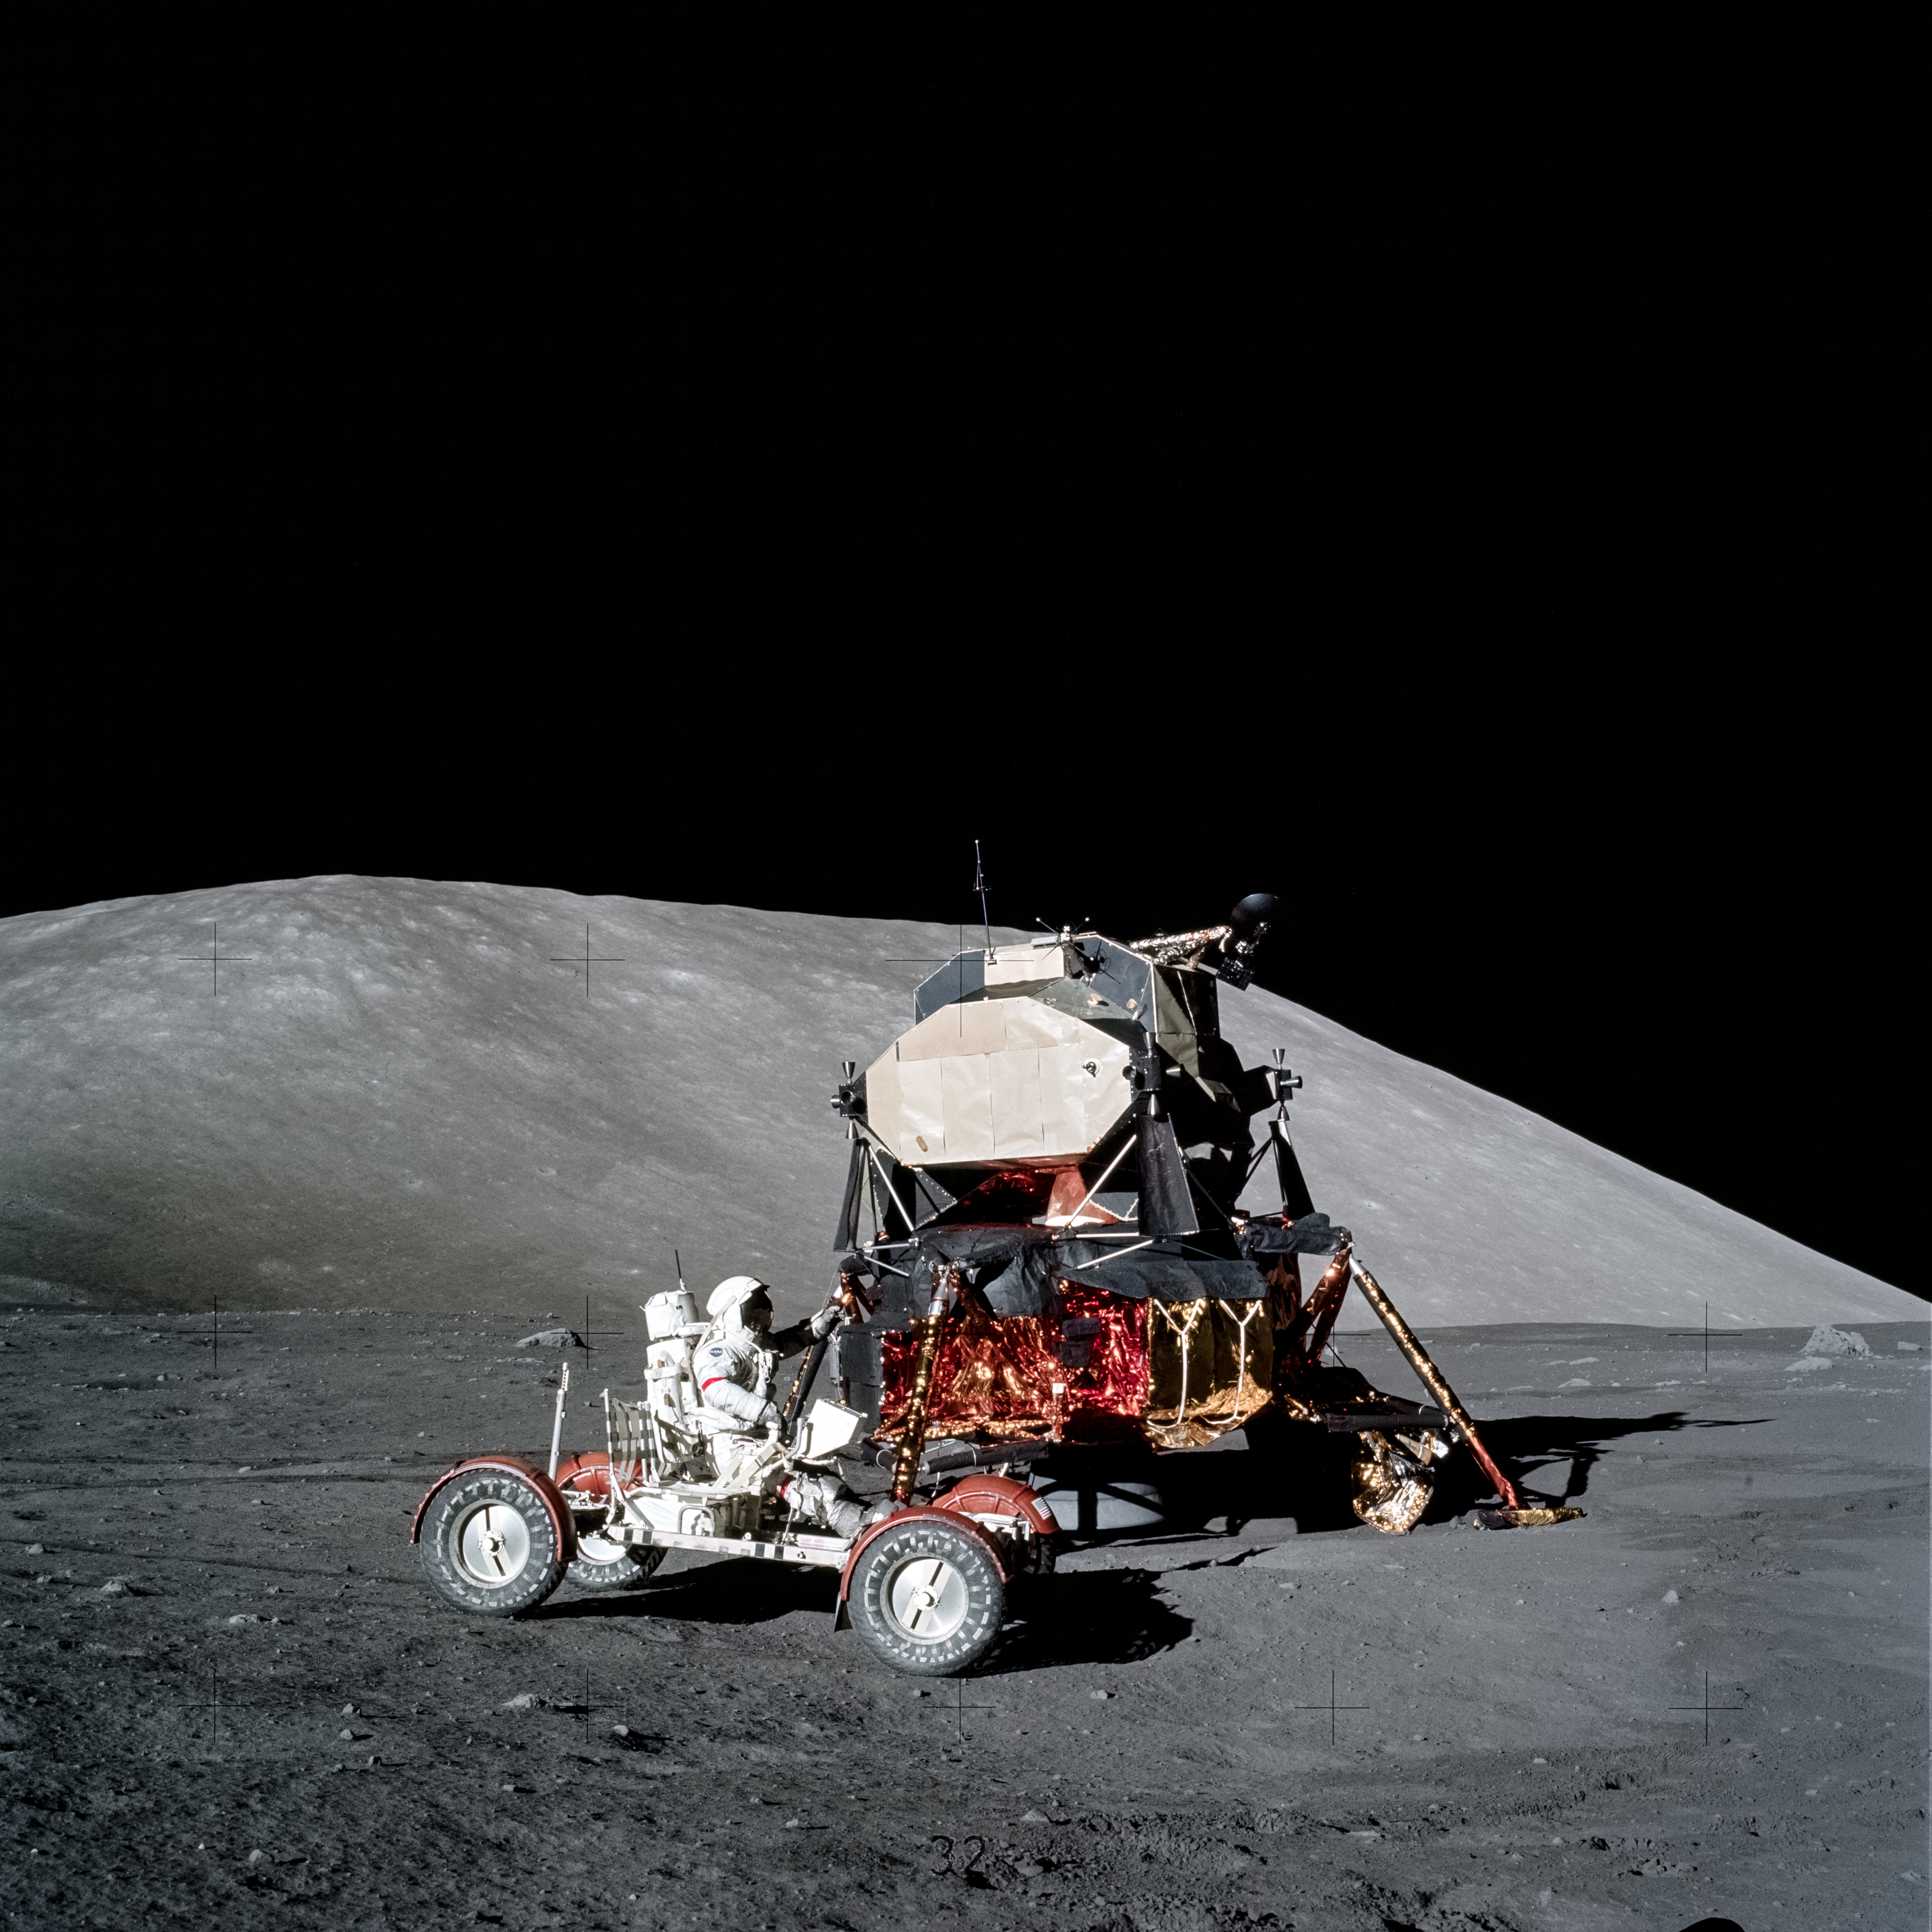 moon rover images - photo #22